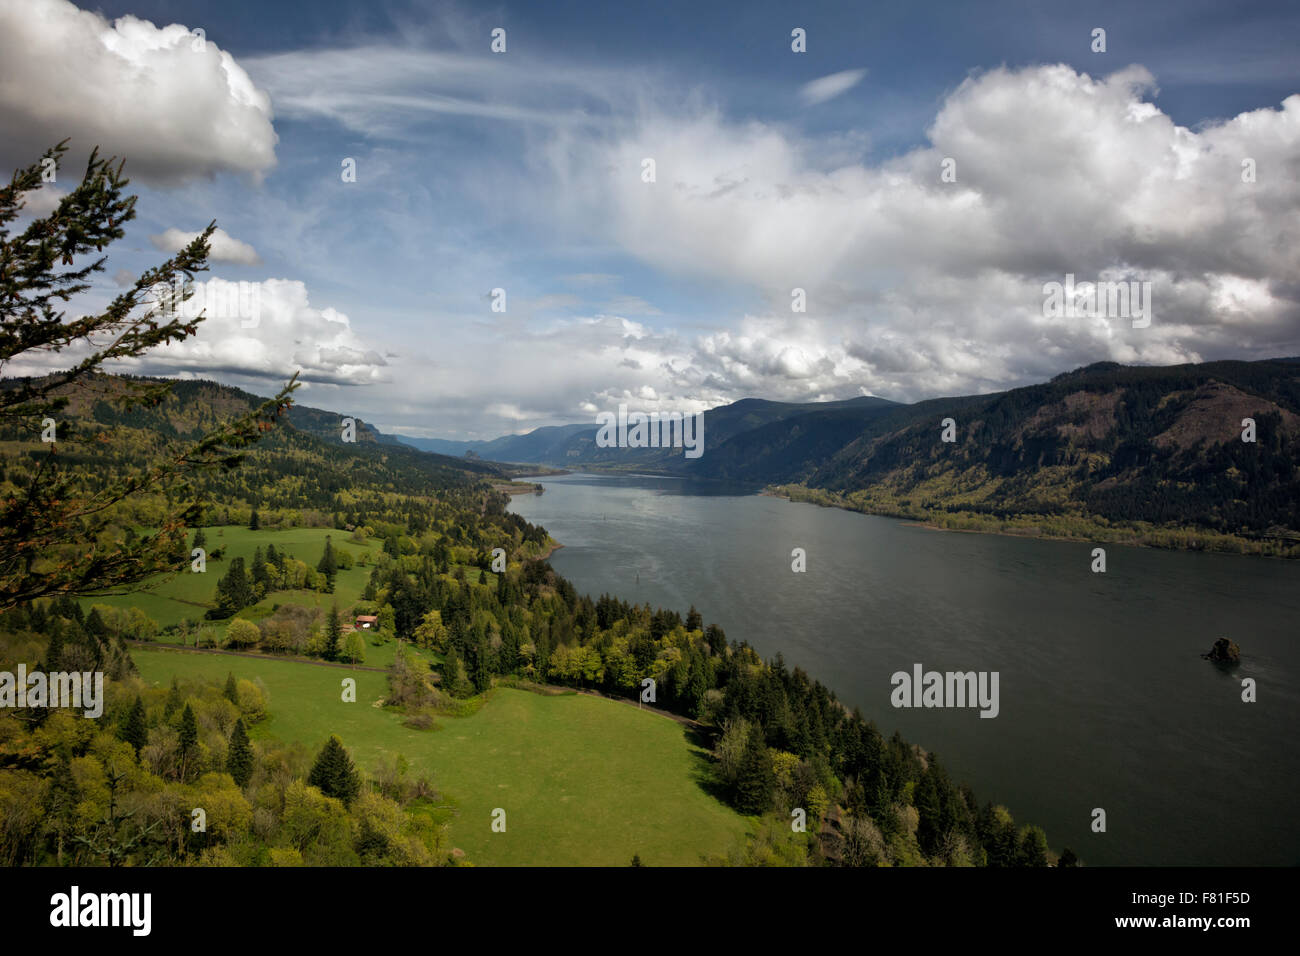 WA12249-00...WASHINGTON - View east up the Columbia River Gorge from the Cape Horn pullout on the Lewis and Clark - Stock Image